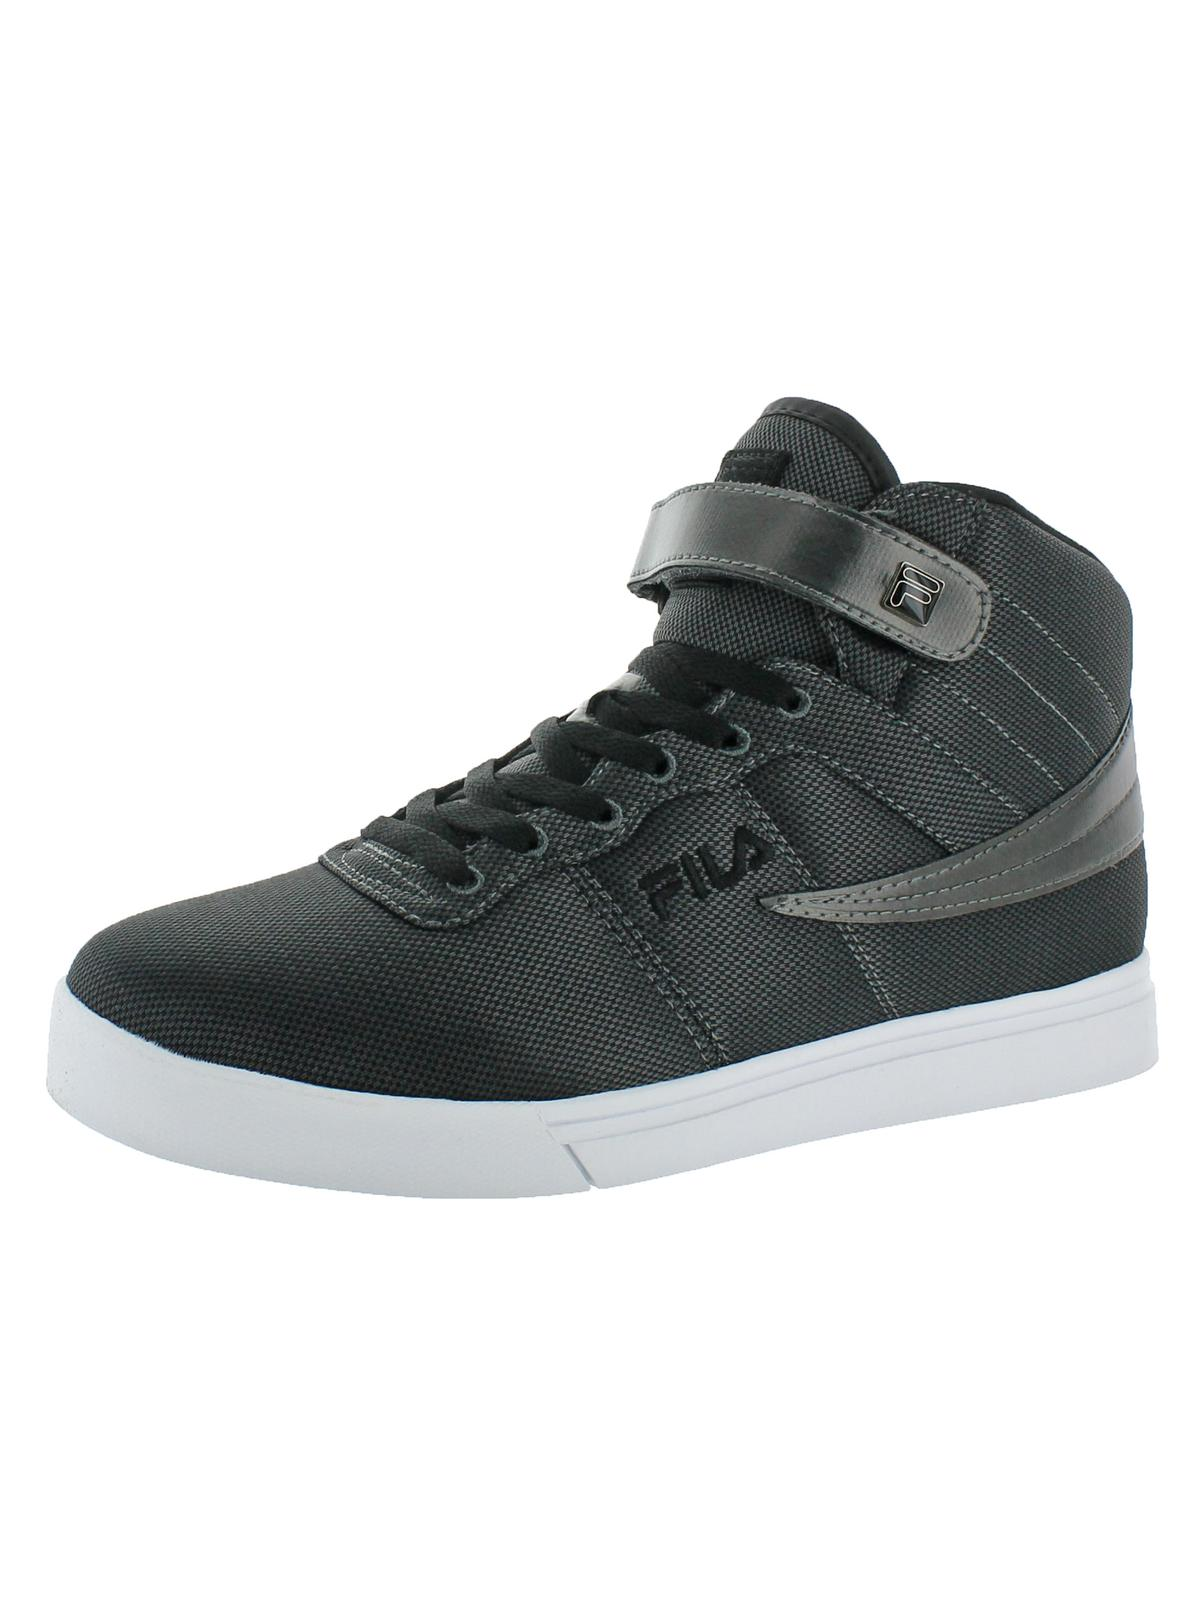 Fila Mens Vulc 13 MP Woven Woven Patchwork High Top Sneakers by Fila